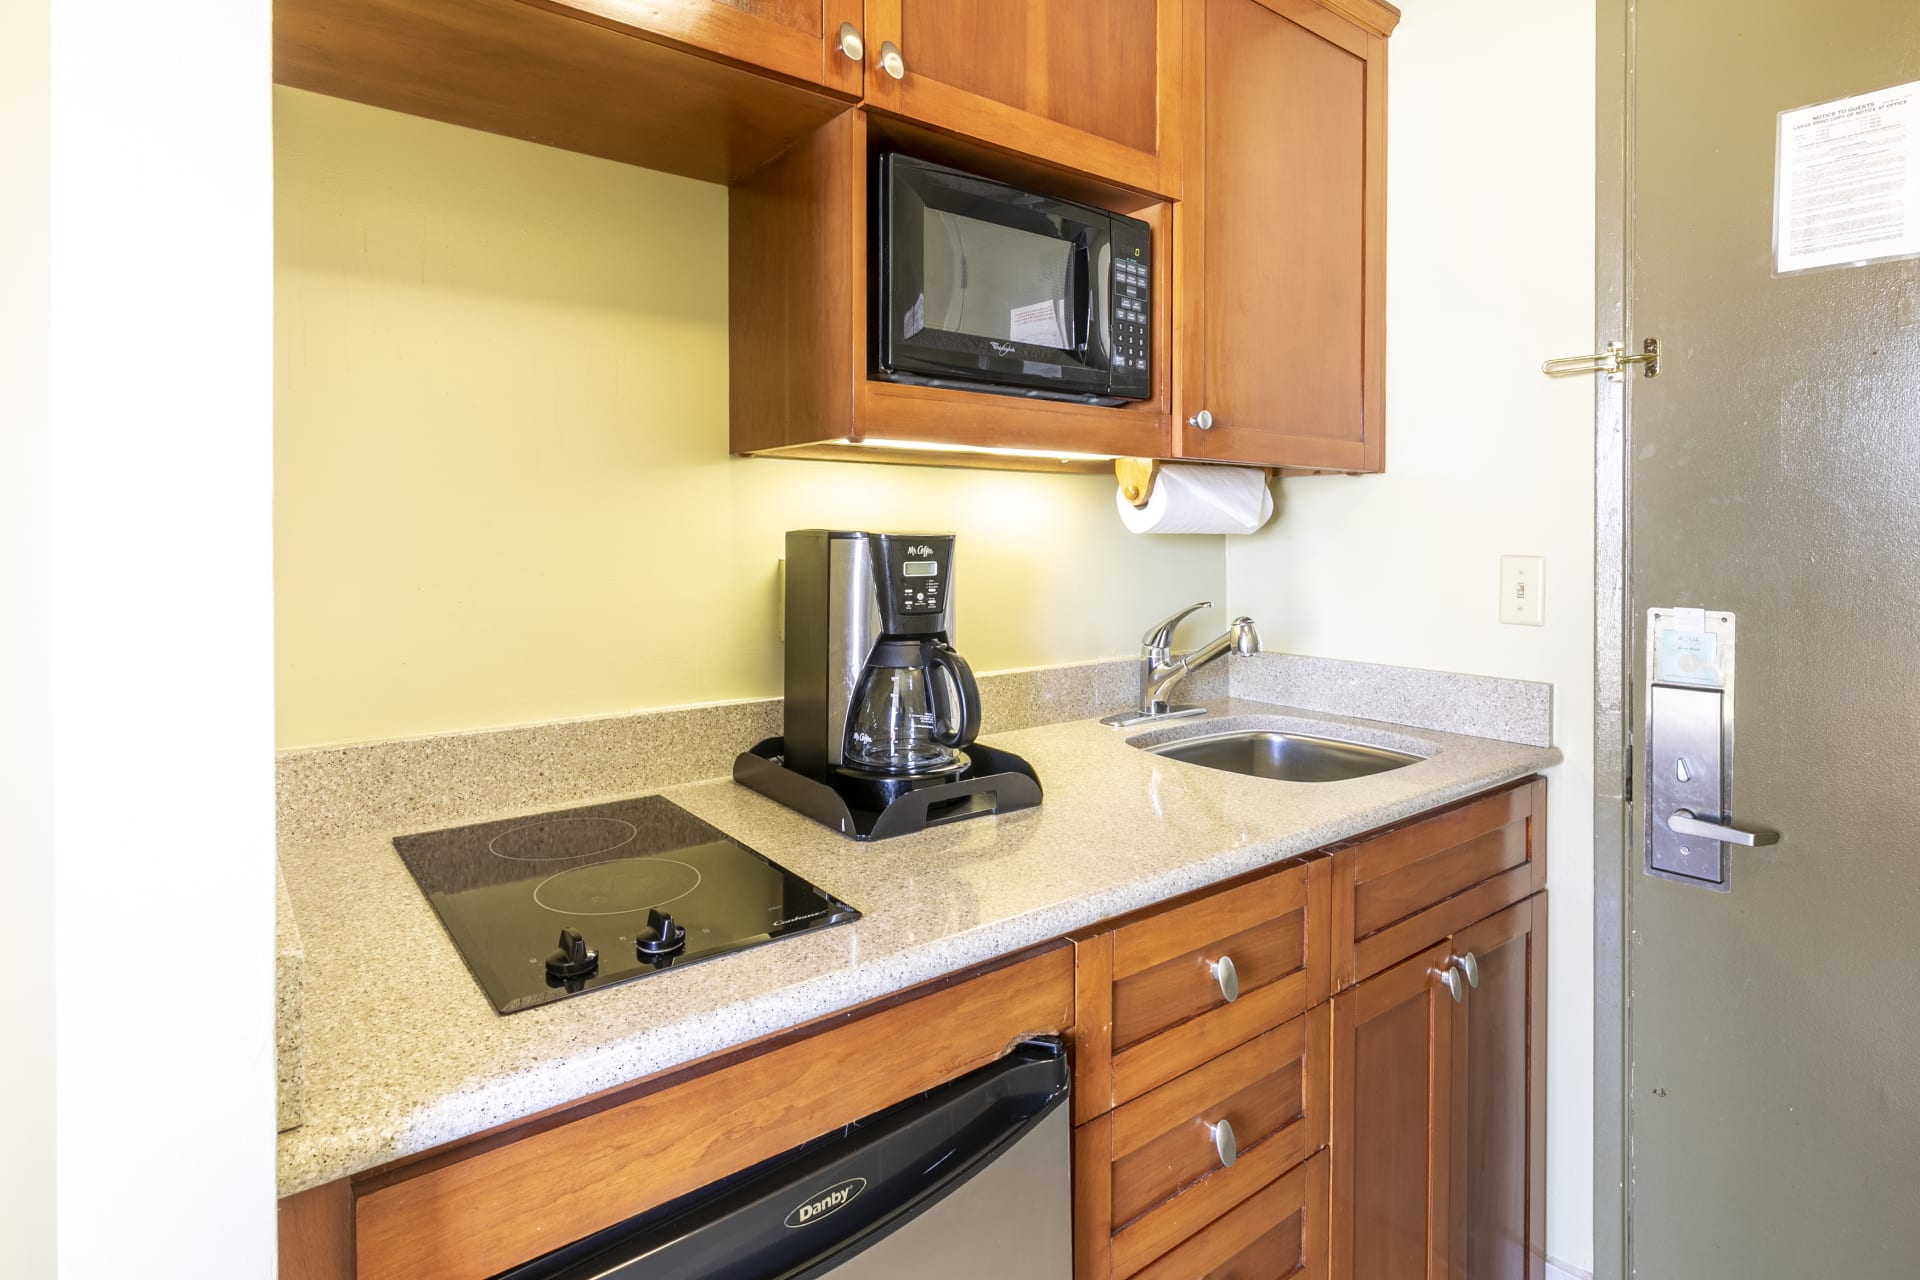 1 Bedroom With Kitchen - 2 Twin Beds